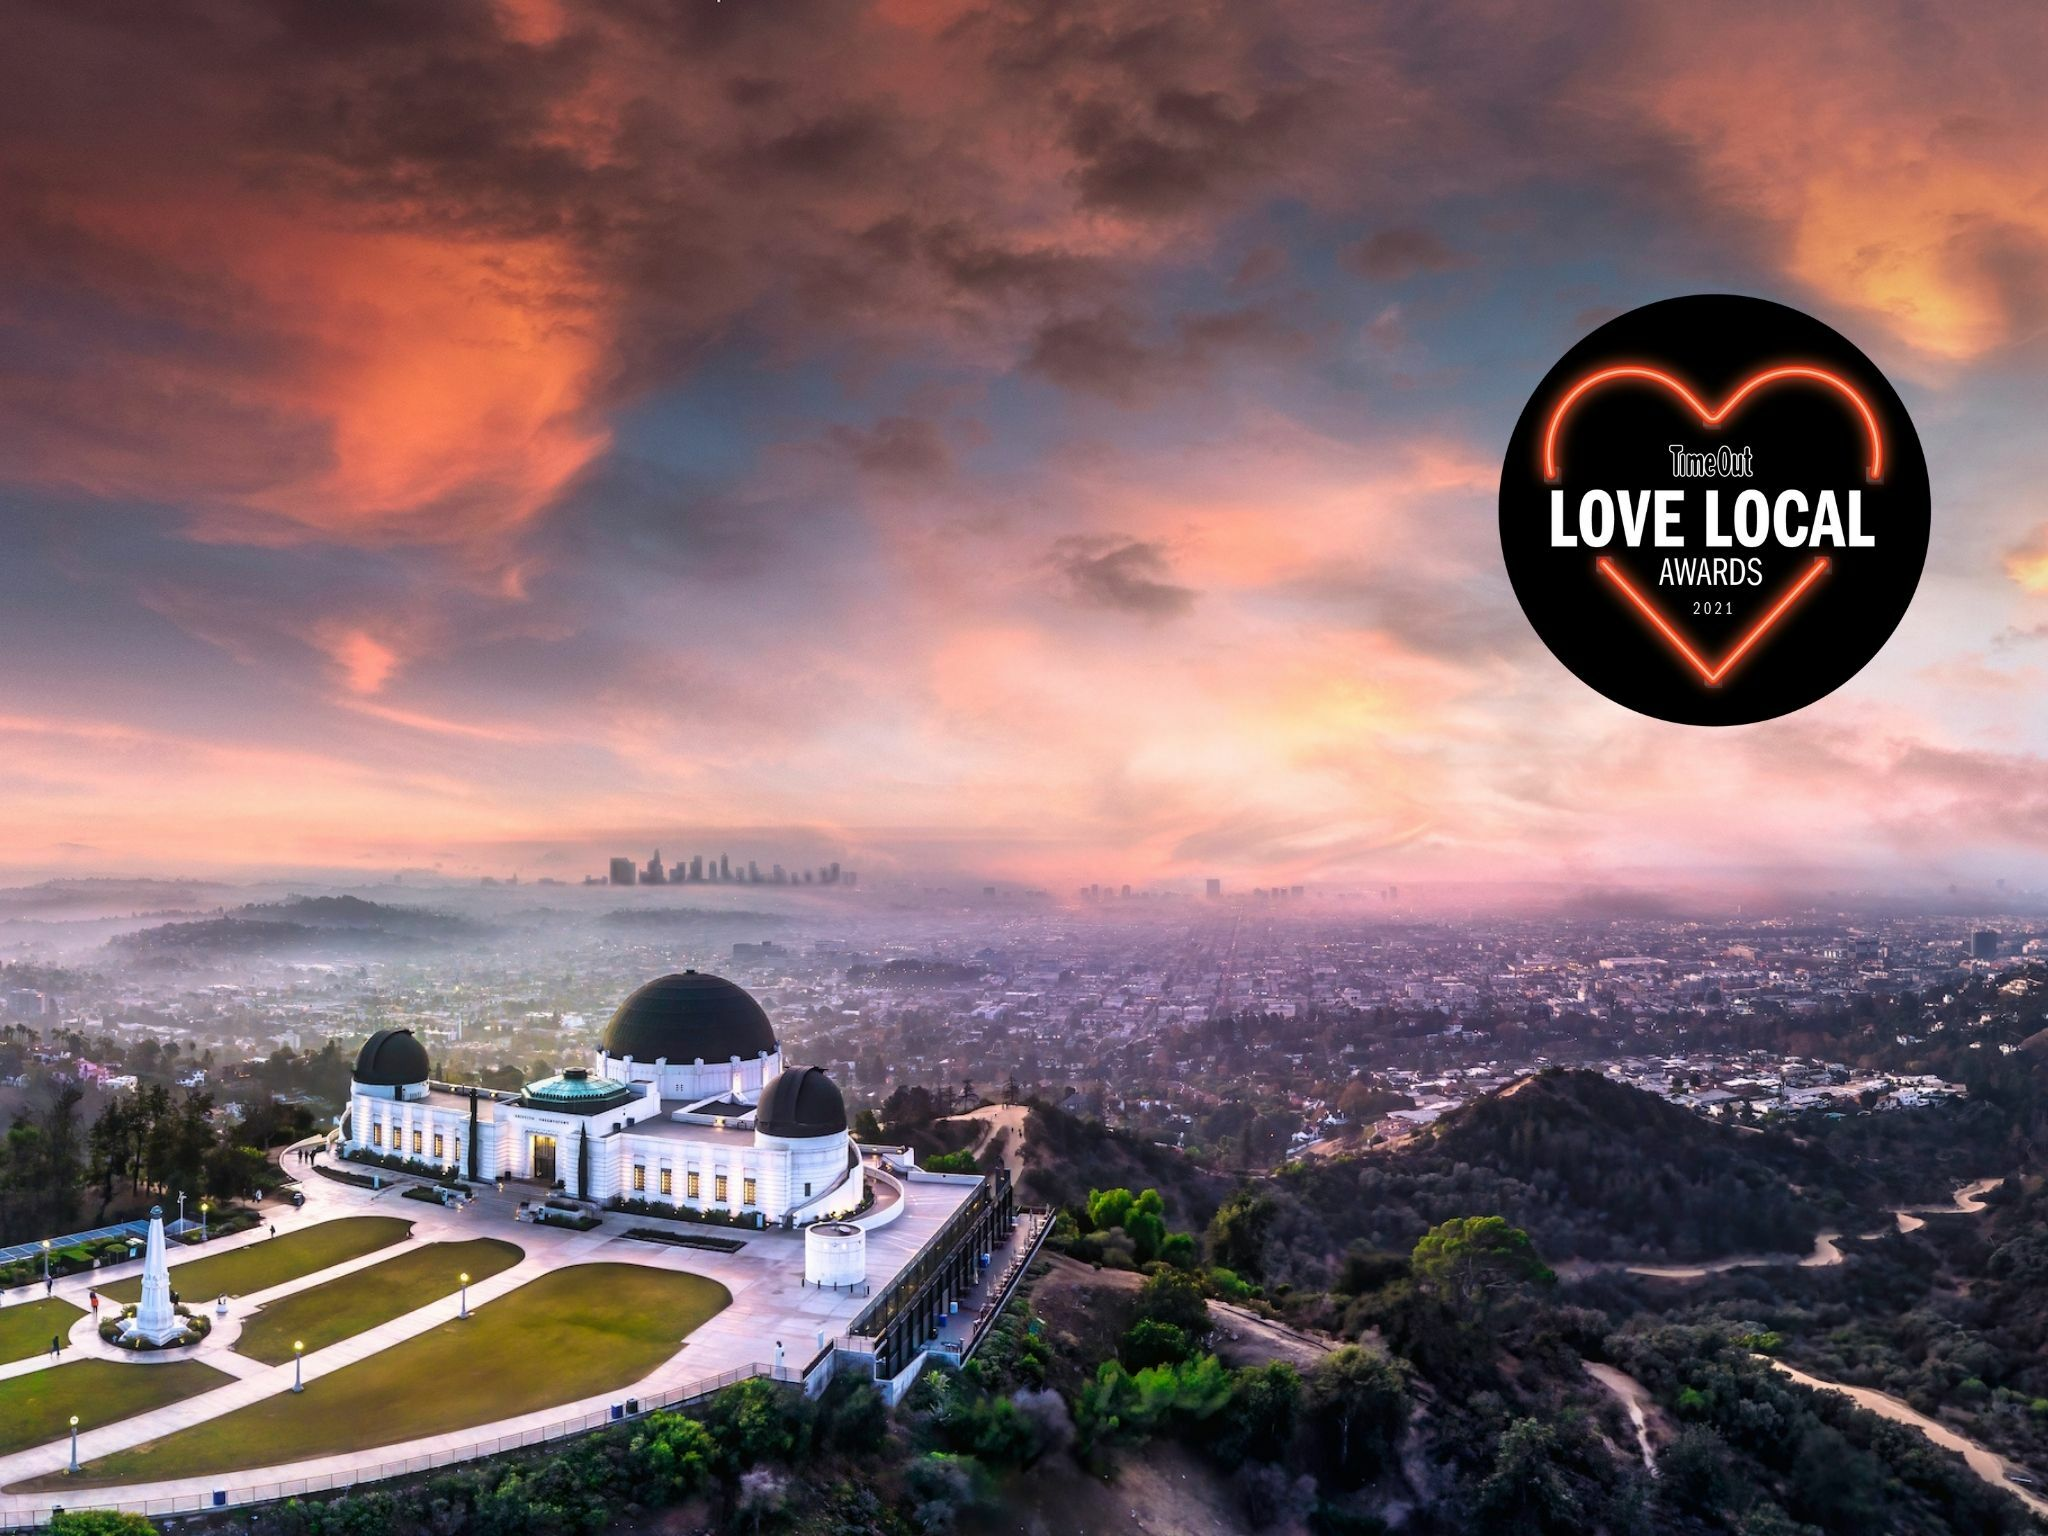 Vote for the Los Angeles places you love in Time Out's annual Love Local Awards